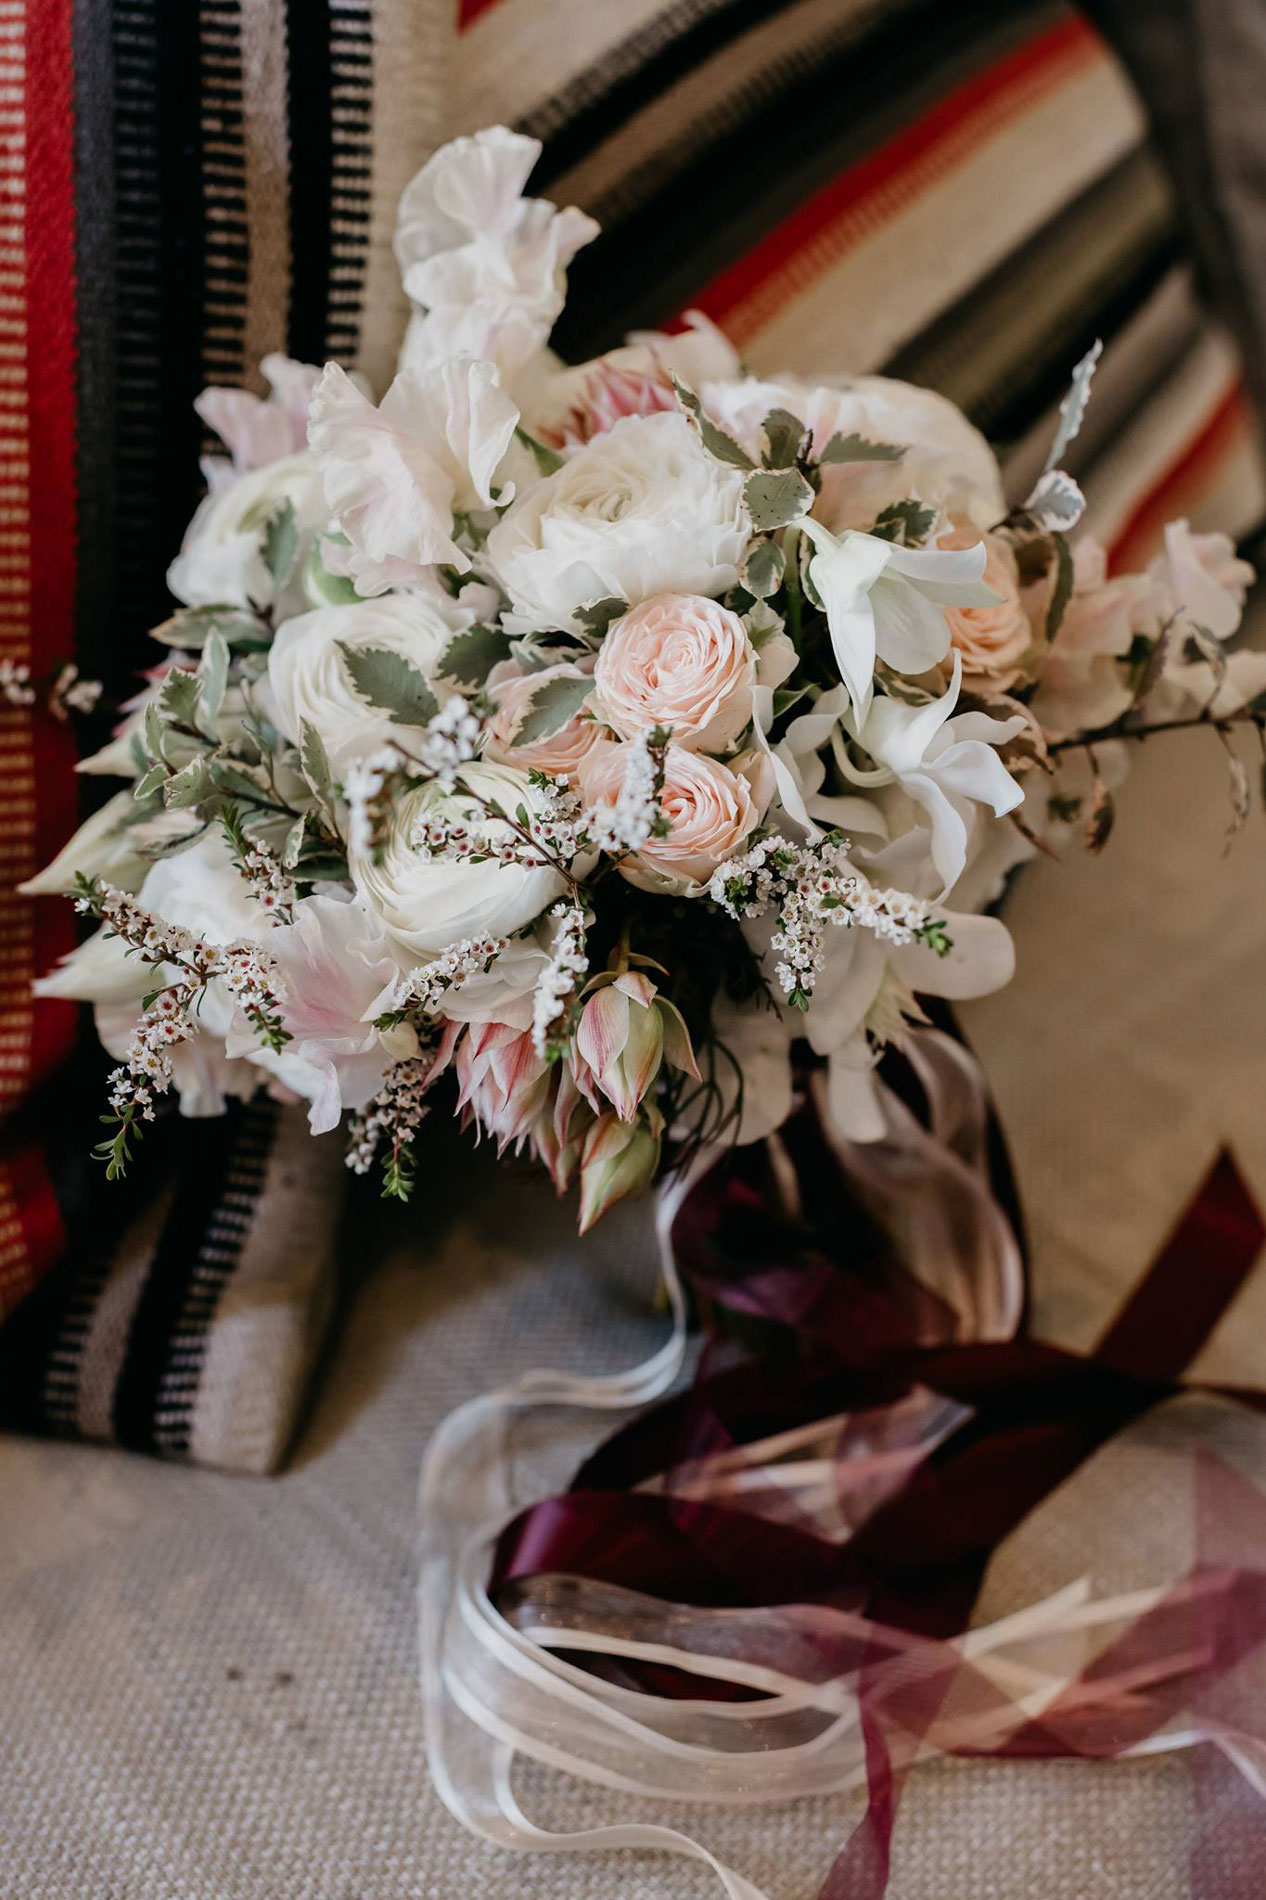 wedding_flowers_linda_kang6.jpg